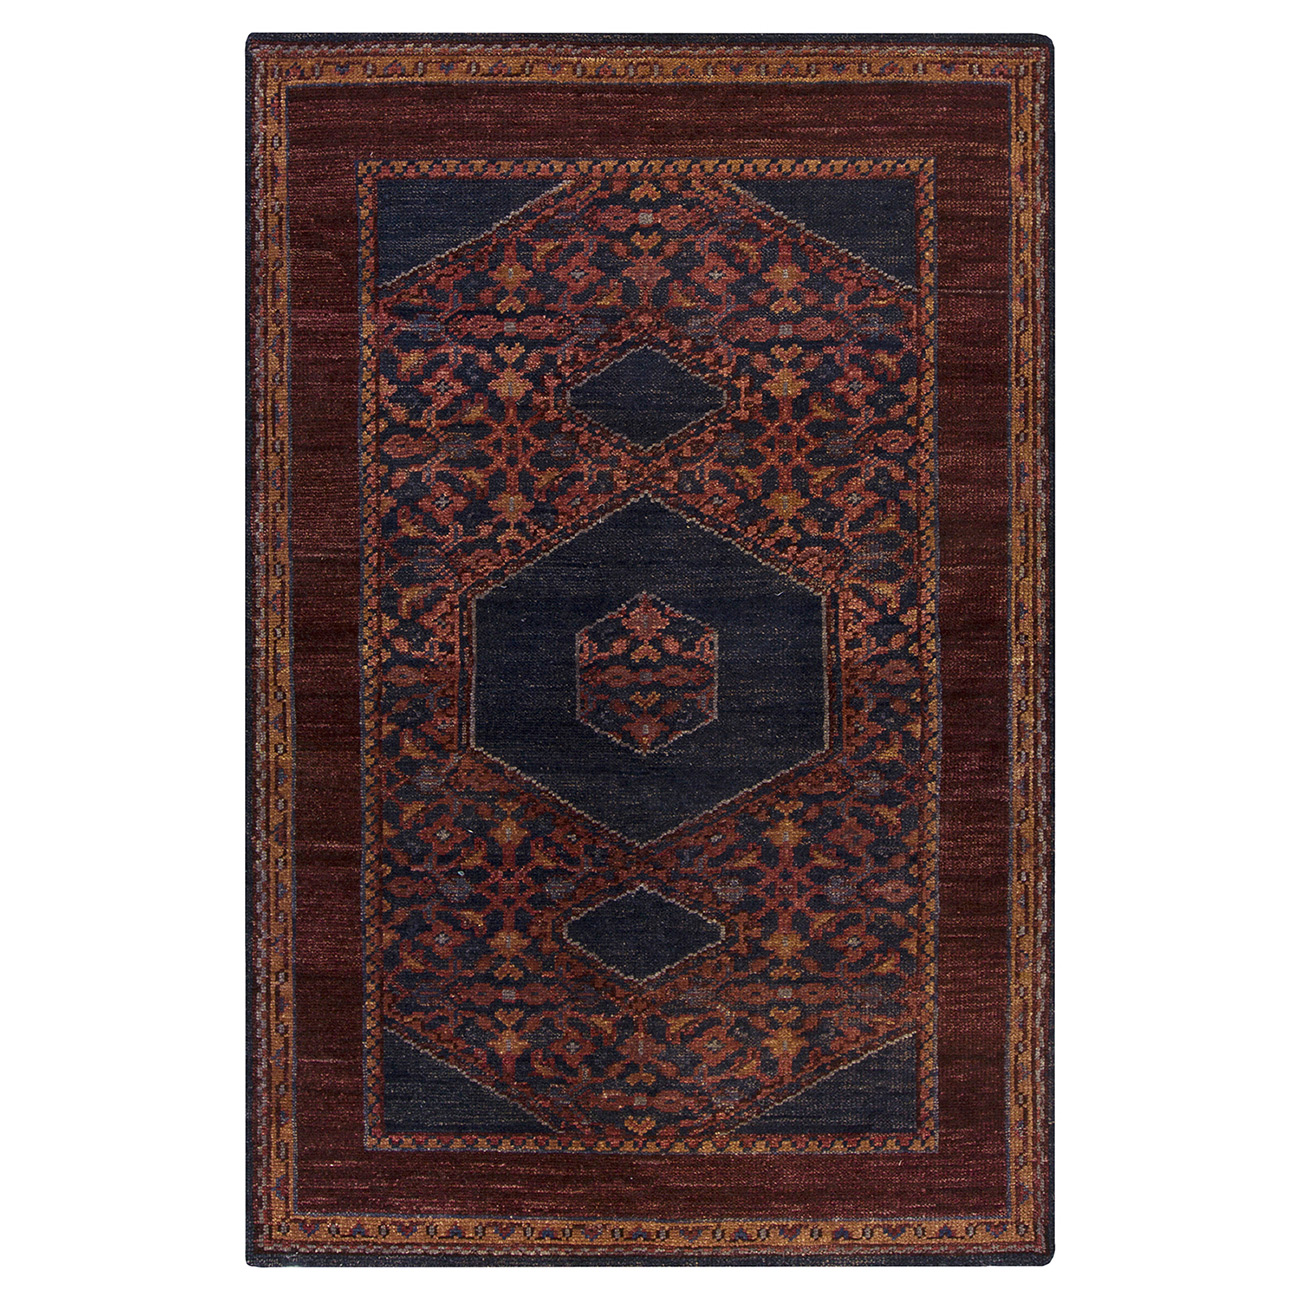 Priya Bazaar Antique Wash Burgundy Wool Rug - 5'6x8'6